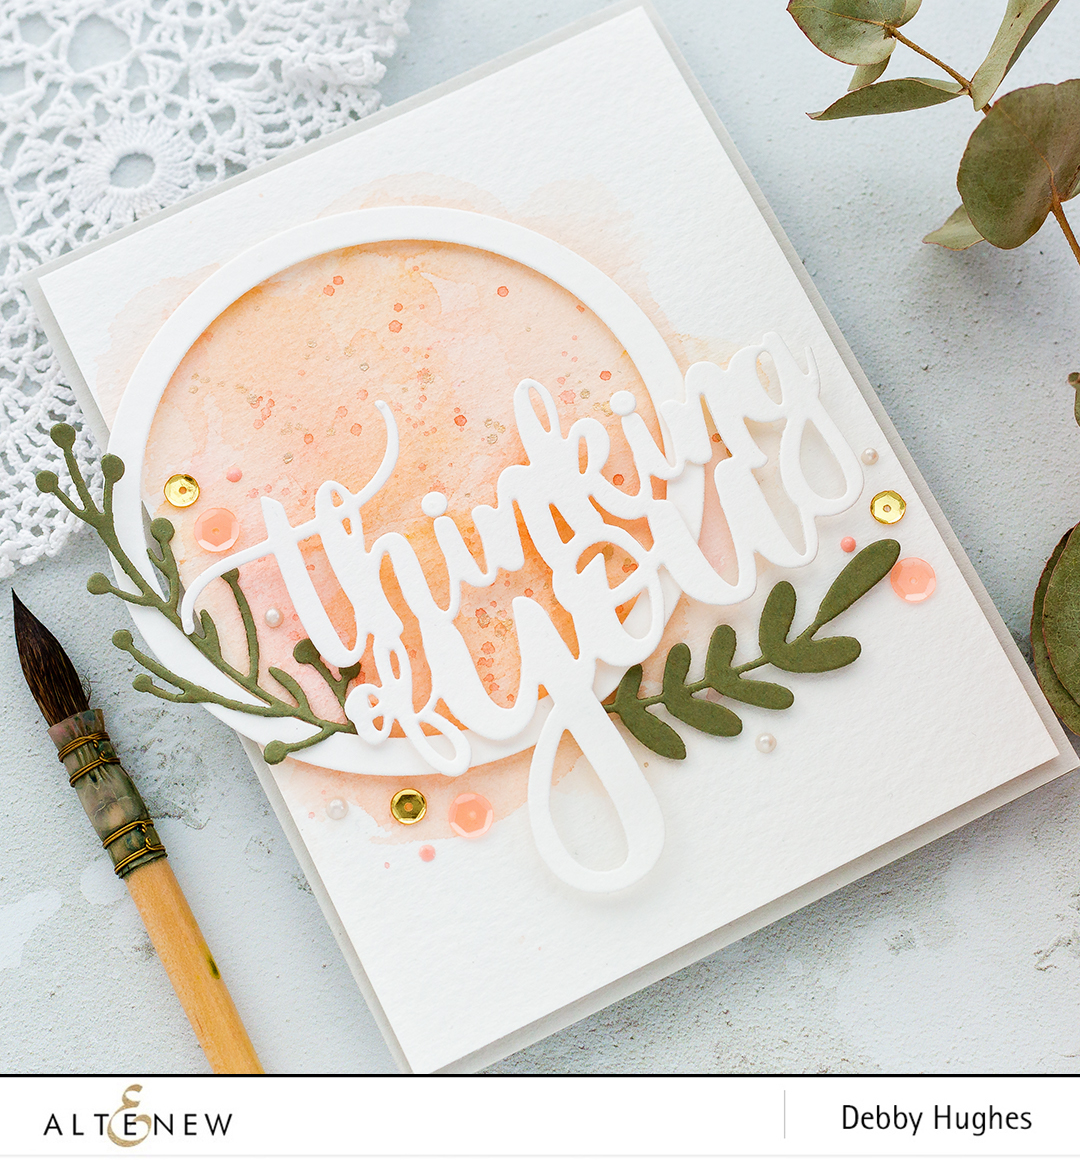 Simple die cut wreath handmade card by Debby Hughes using the Altenew Create A Wreath die set. Find out more here: http://altenewblog.com/2018/01/21/simple-die-cut-wreath-with-debby-hughes/